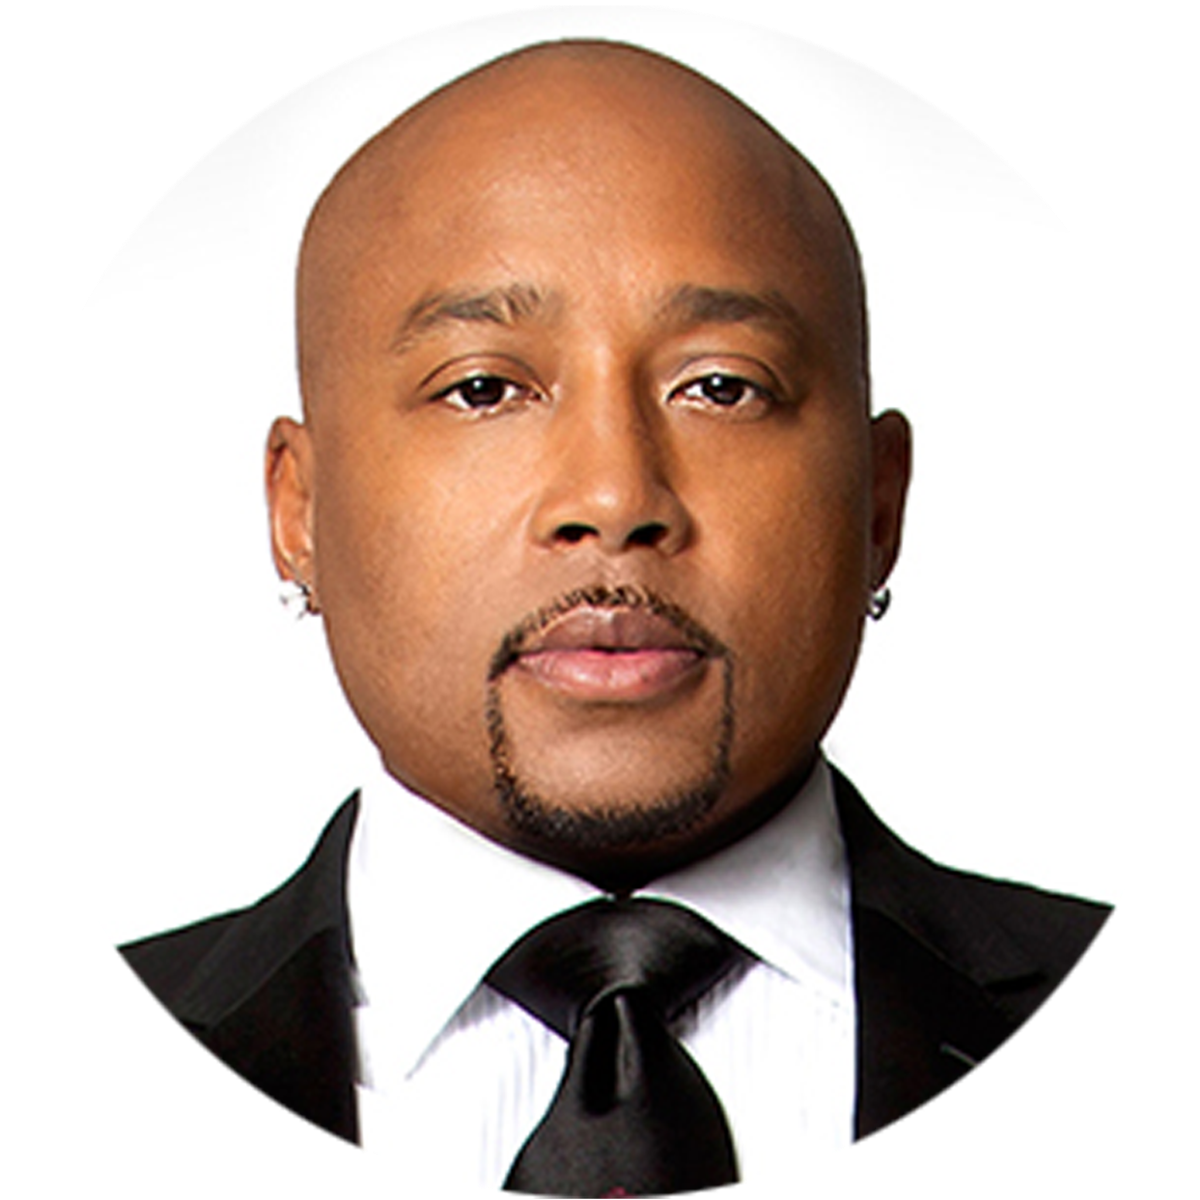 Daymond John - Star of ABC's Shark Tank & CEO of the Shark Group